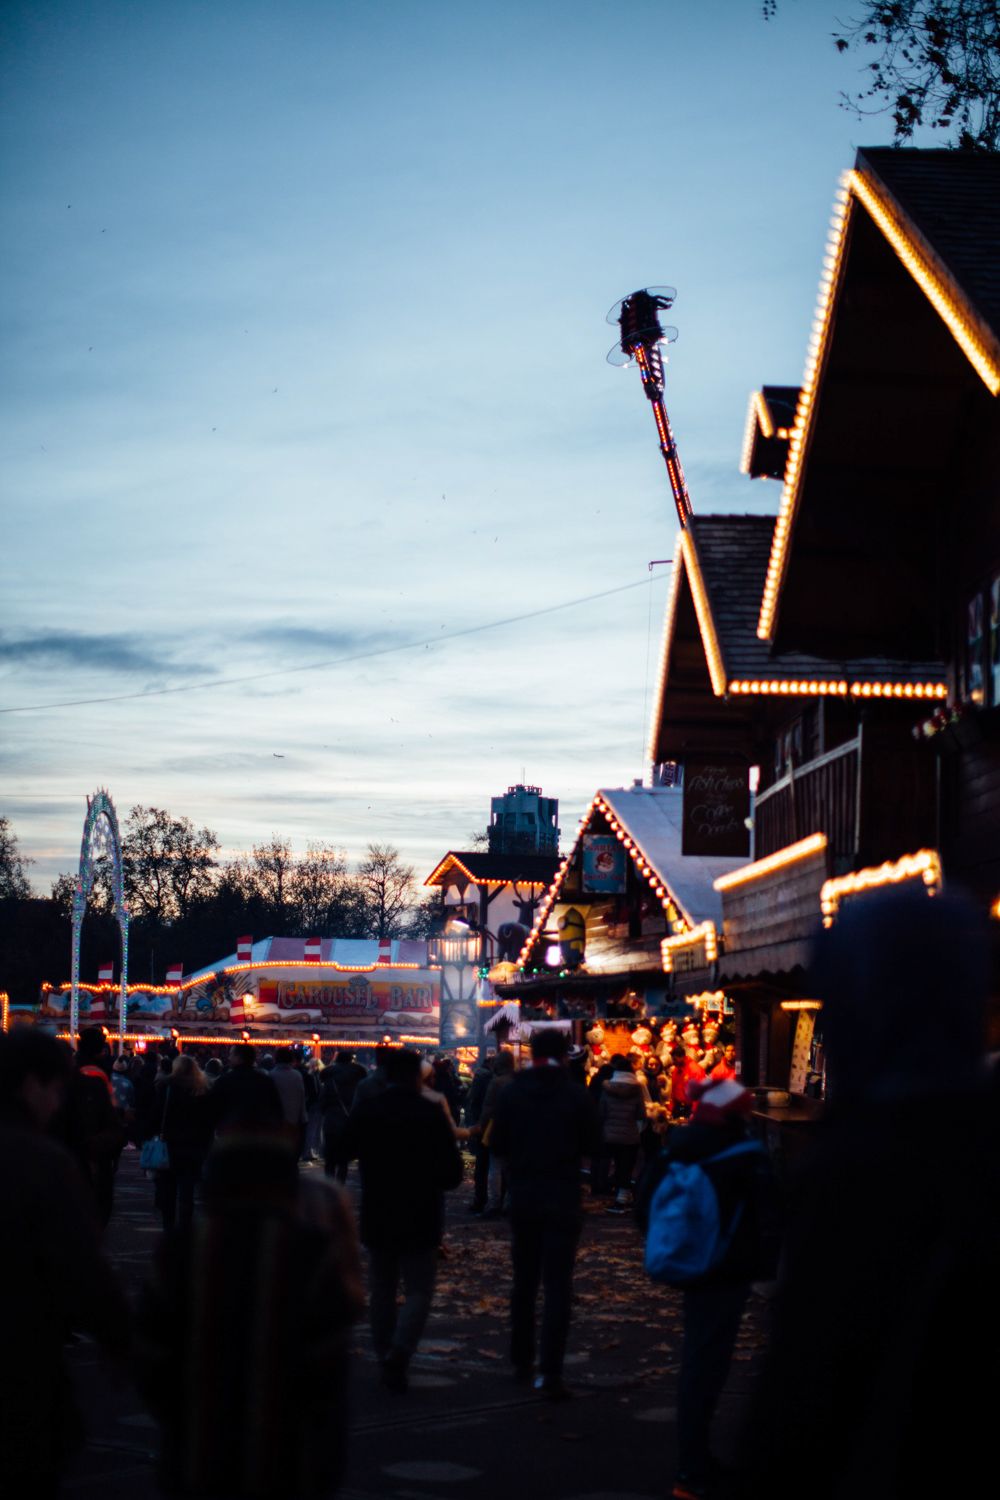 Christmas market in Winter Wonderland.